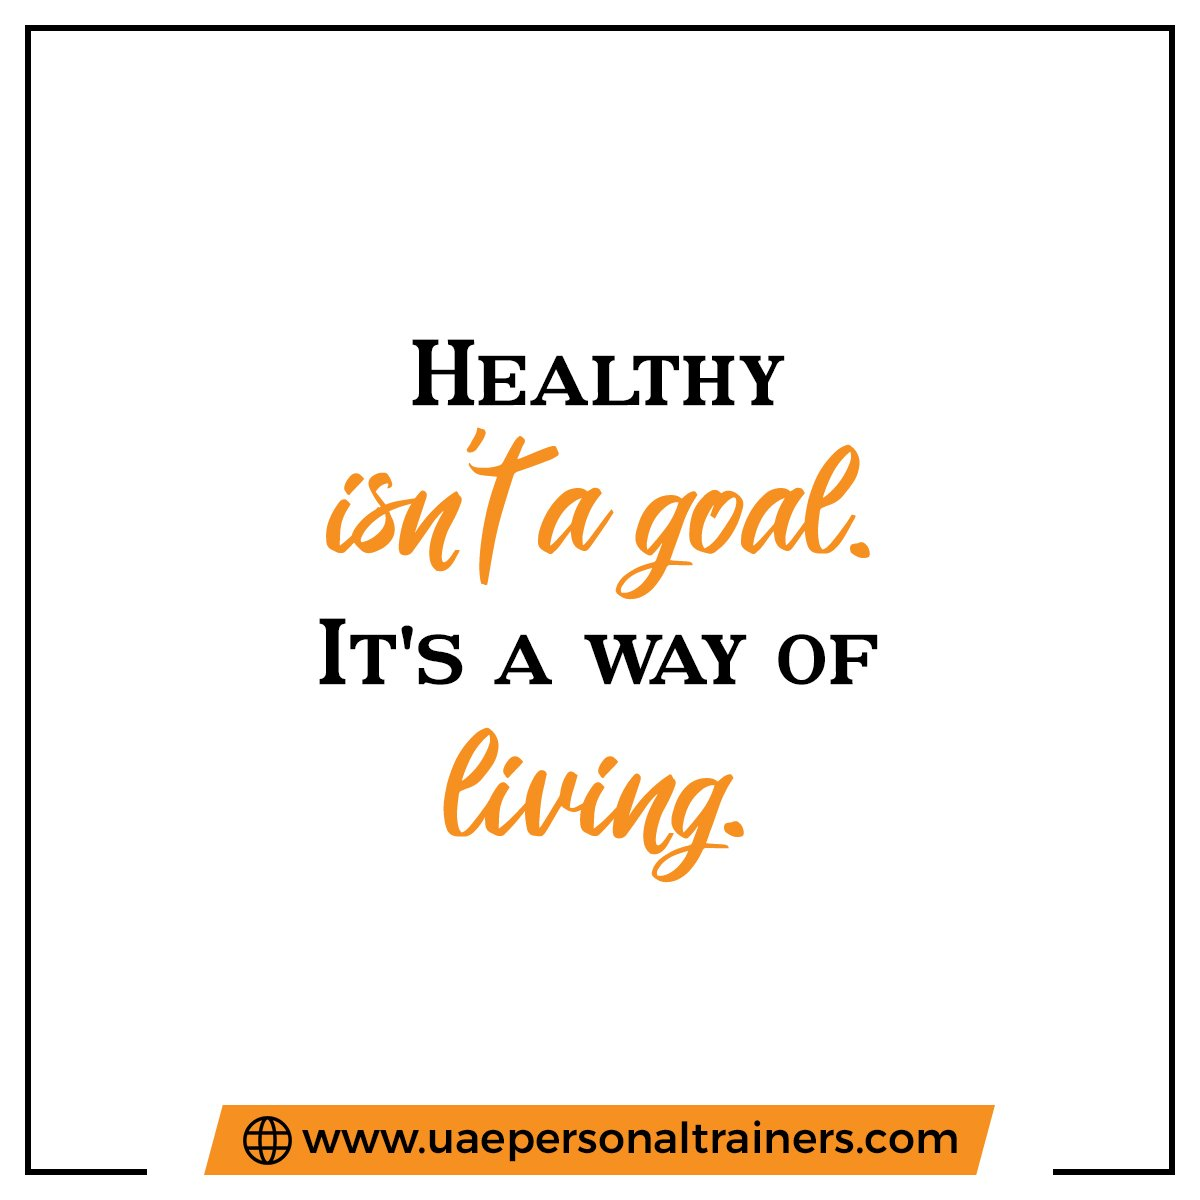 Healthy Isnt A Goal But A Way Of Living - UAE Personal Trainers